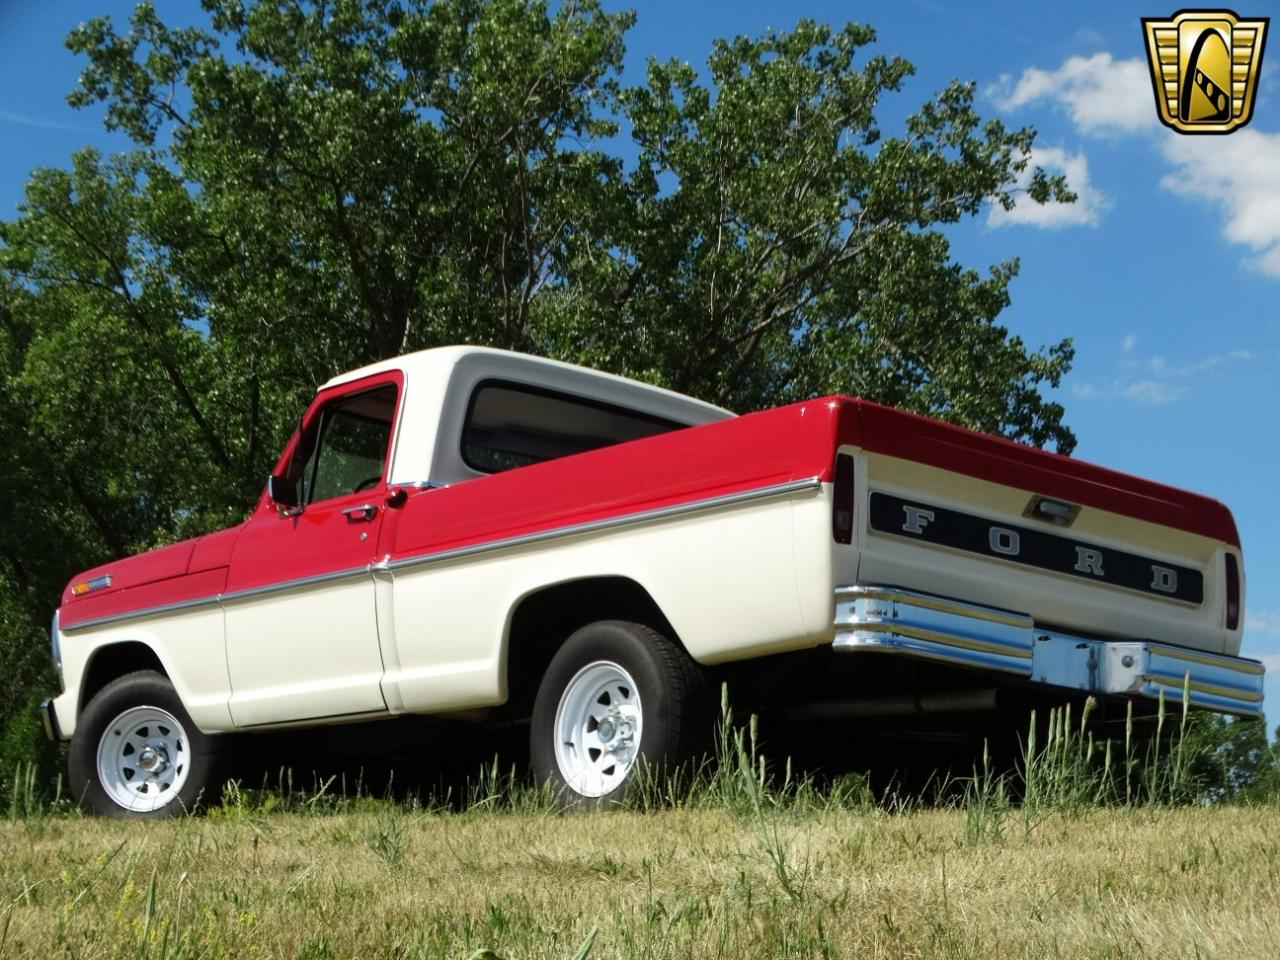 1968 Ford F100 10000 Miles Two Tone Red Over White Pickup